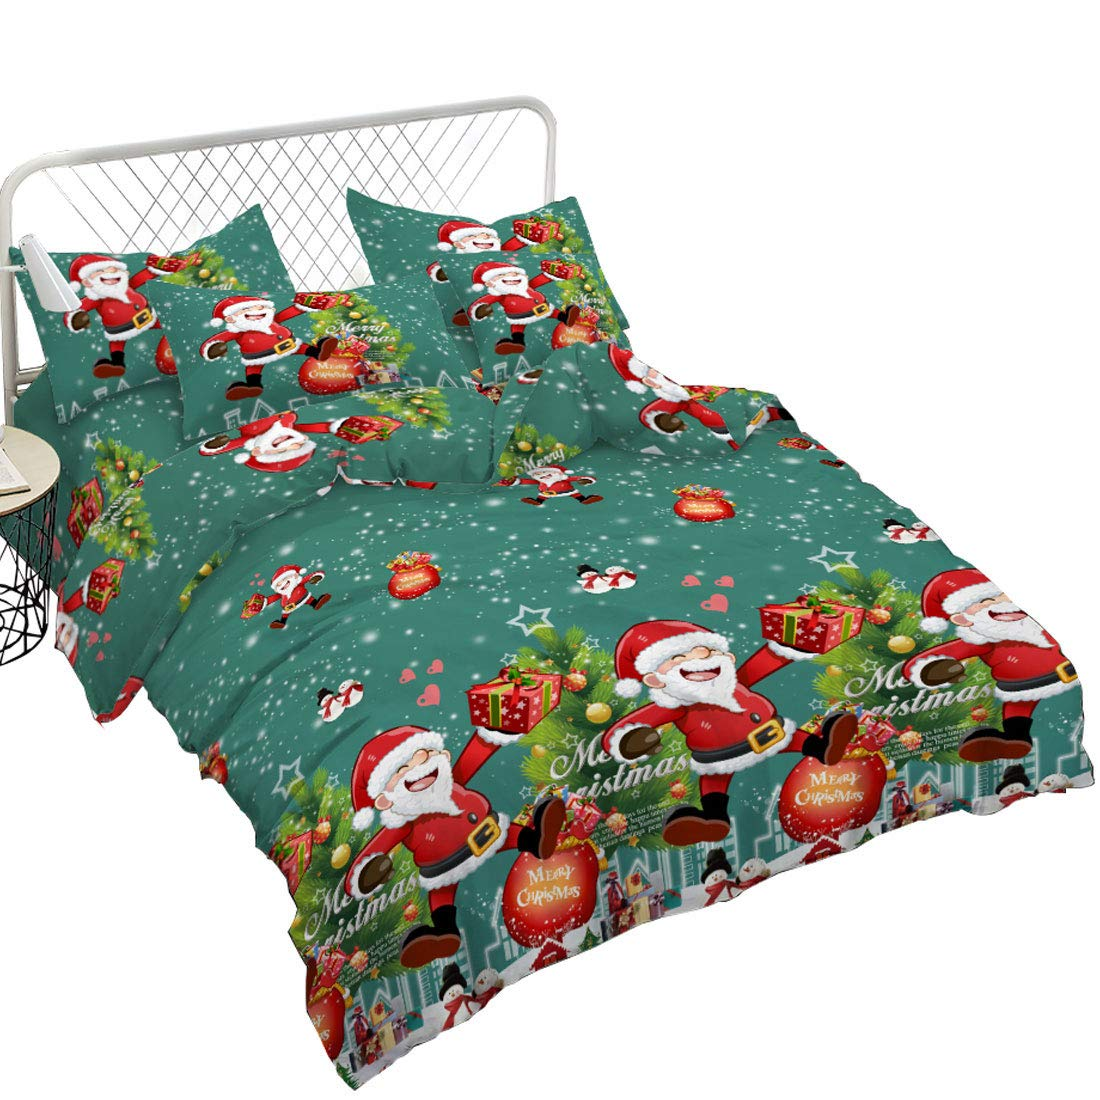 Junhome Duvet Cover Twin Size,Christmas Bedding for Kids,Quilt Cover ...